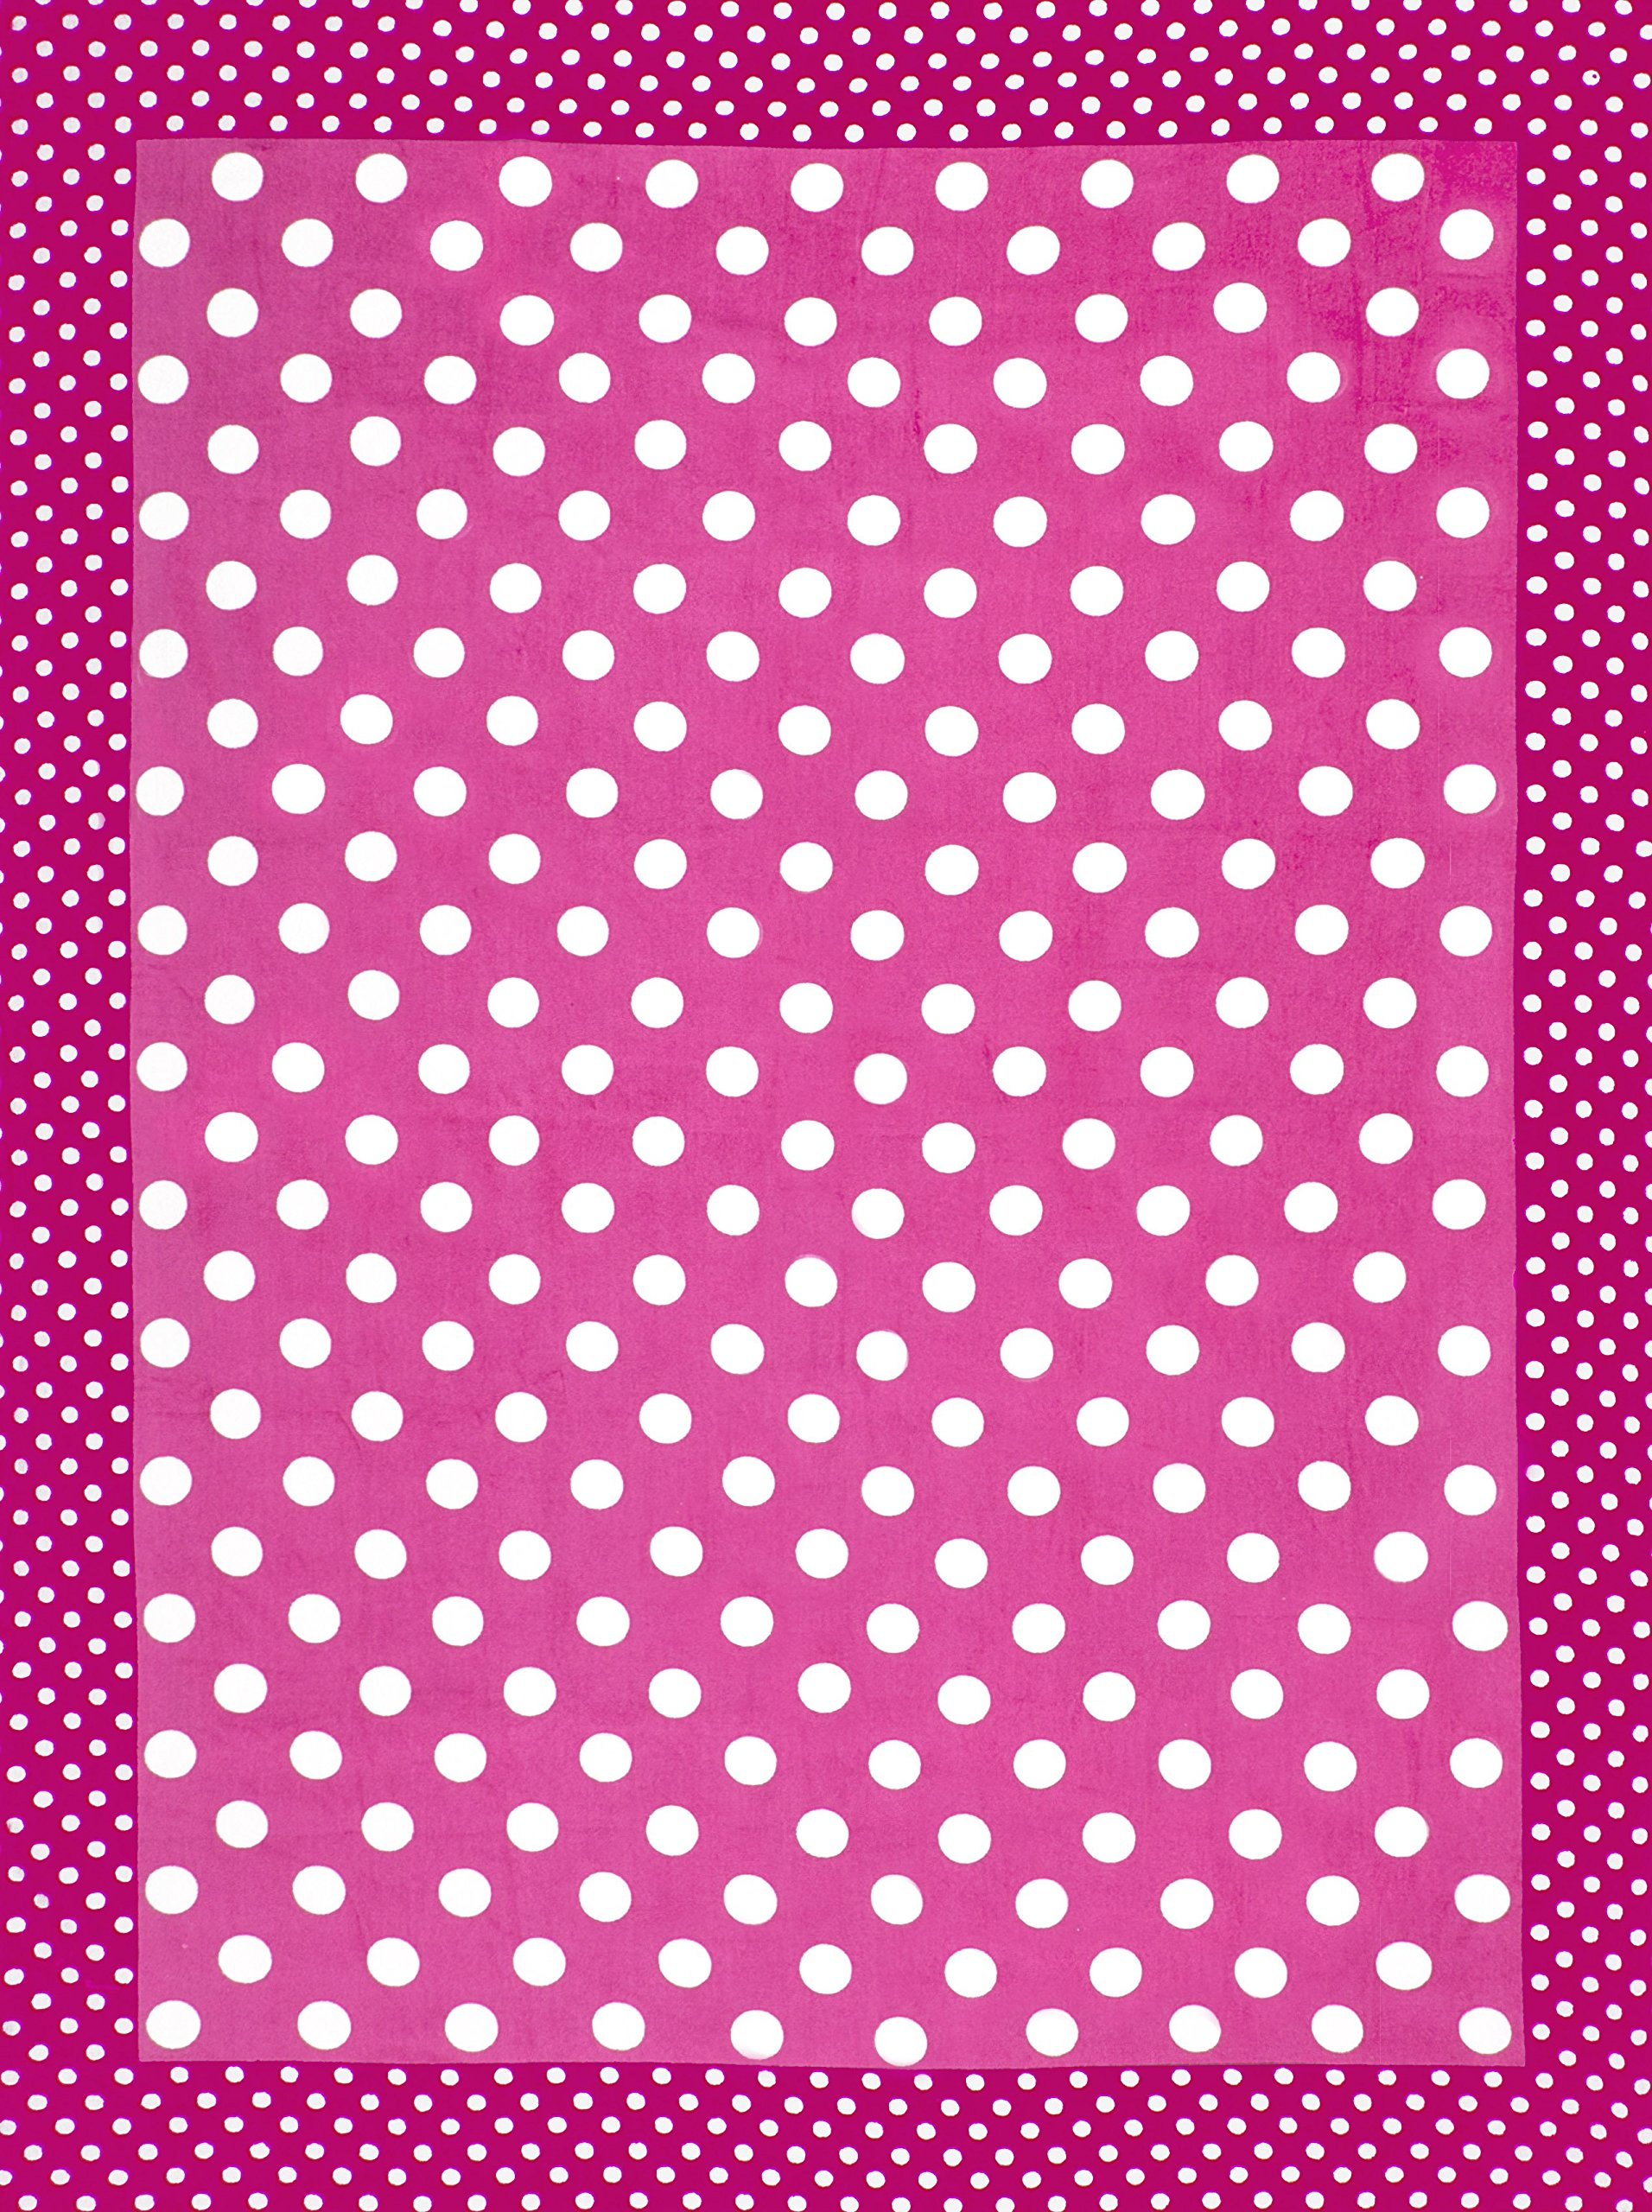 Dots and Dots Pink Brazilian Velour Beach Towel 58x74 Inches by Bahia Collection by Dohler